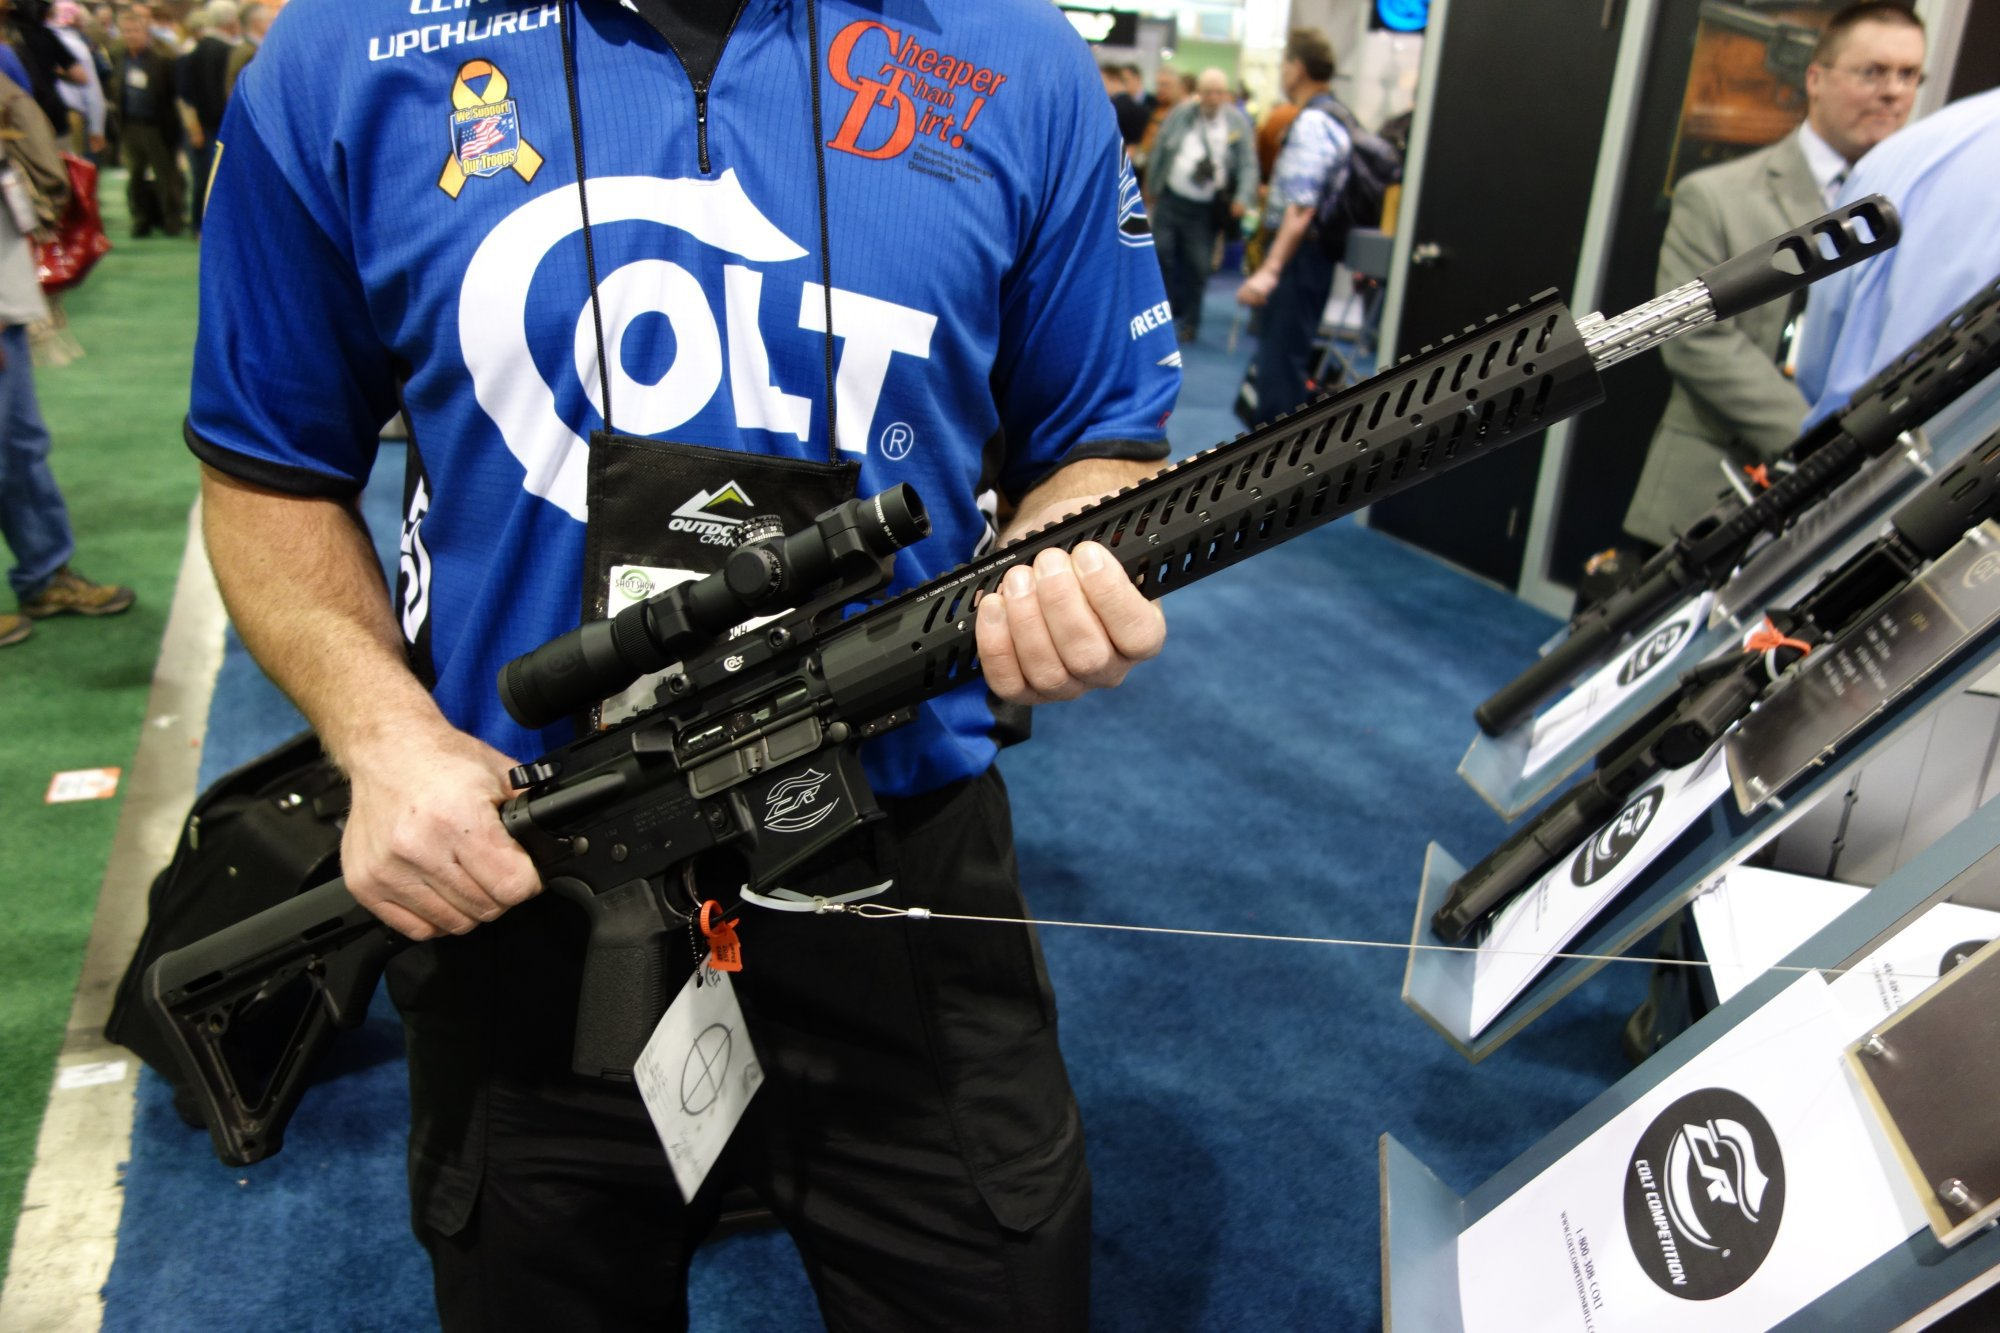 Colt Pro CRP-18 and Pro CRP-16 AR-15 Carbine/Rifles for Tactical 3-Gun Competition/Competitive Shooting: Adjustable Gas System, Geissele SSA-E Trigger, and Fluted Barrel! (Video!)